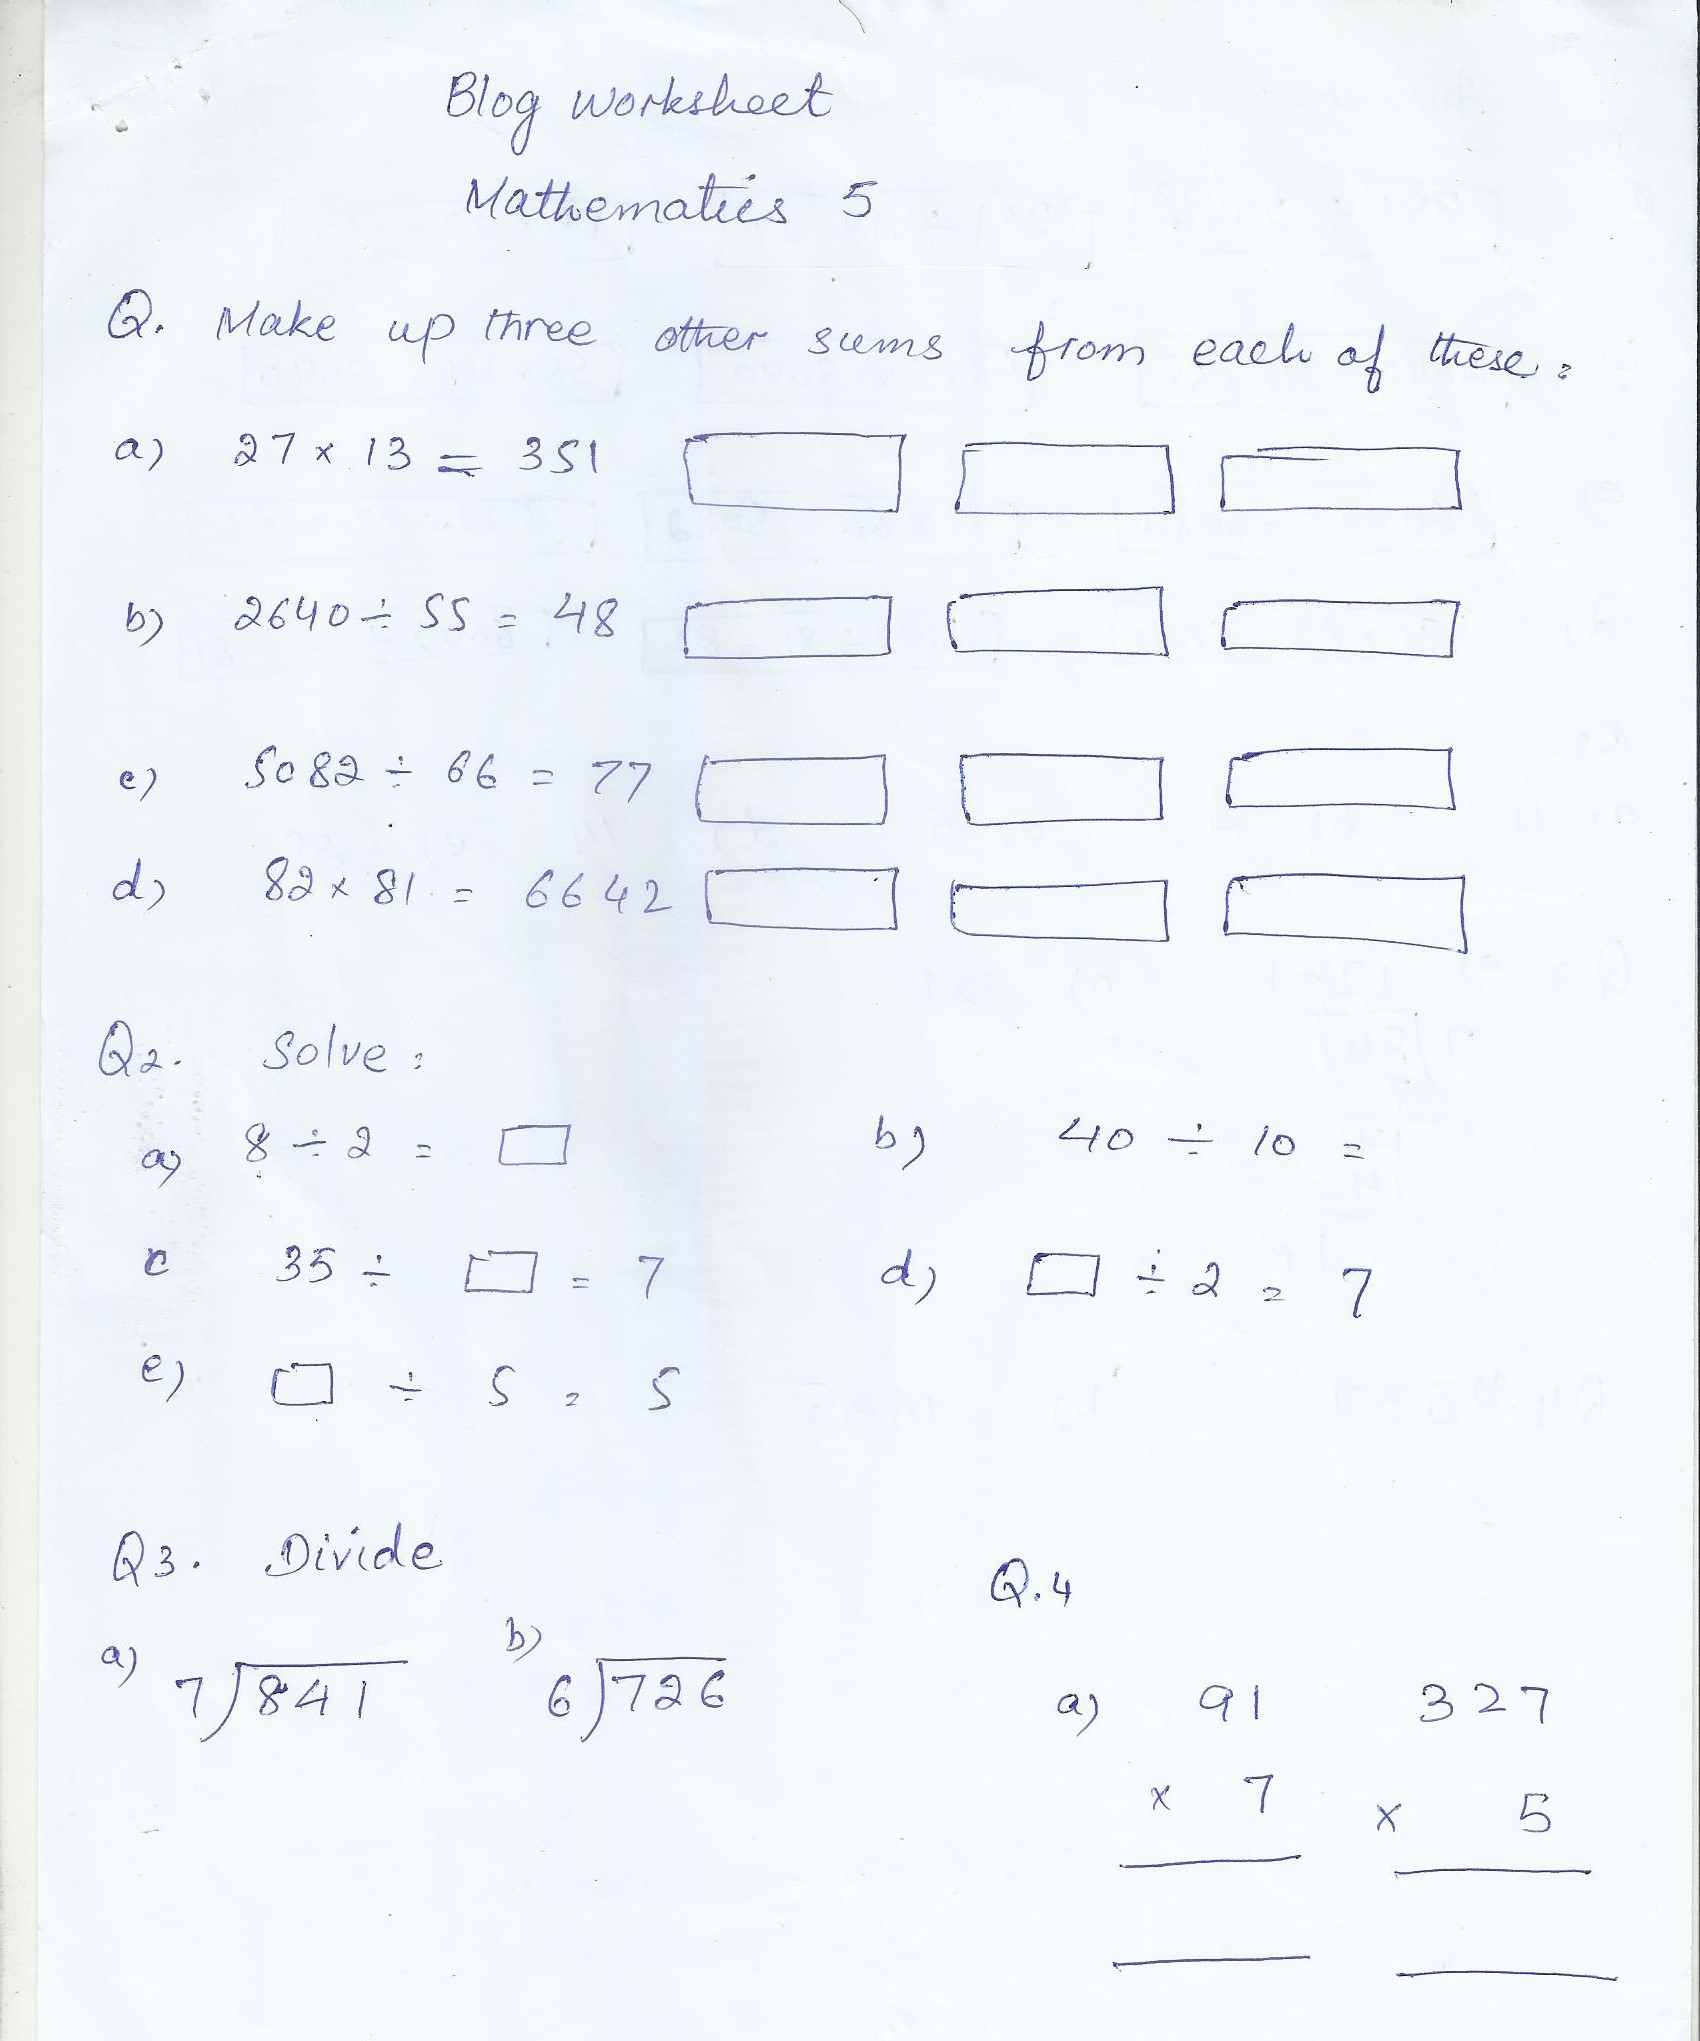 Math Blog Worksheet Class 5 Paf Juniors